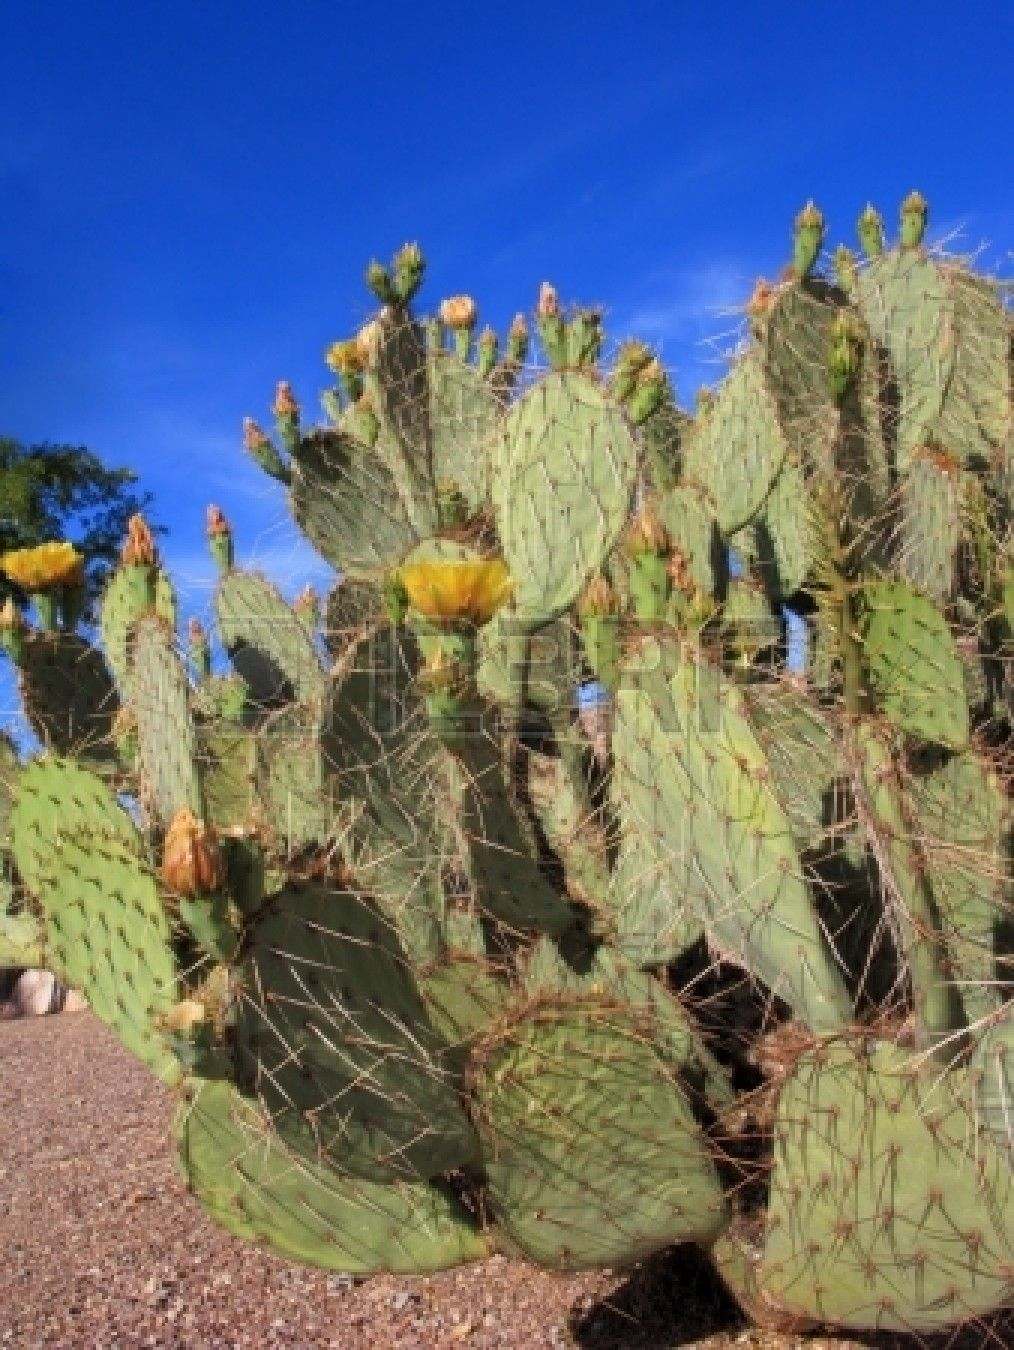 Arizona Prickly Pear Or Paddle Cactus With Yellow Flowers In Wip